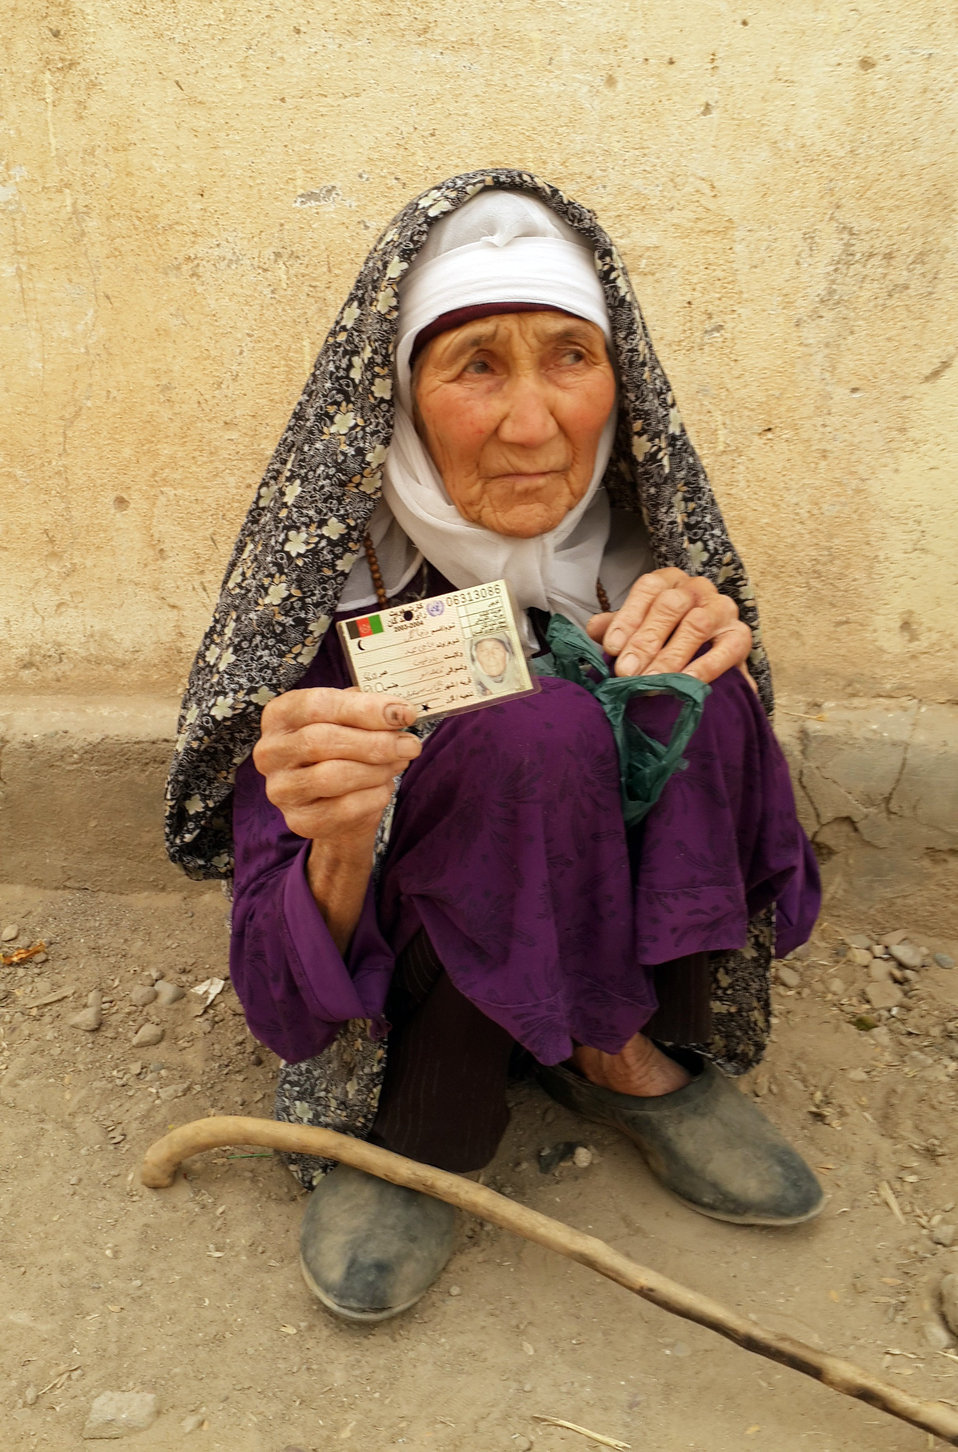 An elderly woman posing for a photo after casting her vote in Badghis province.